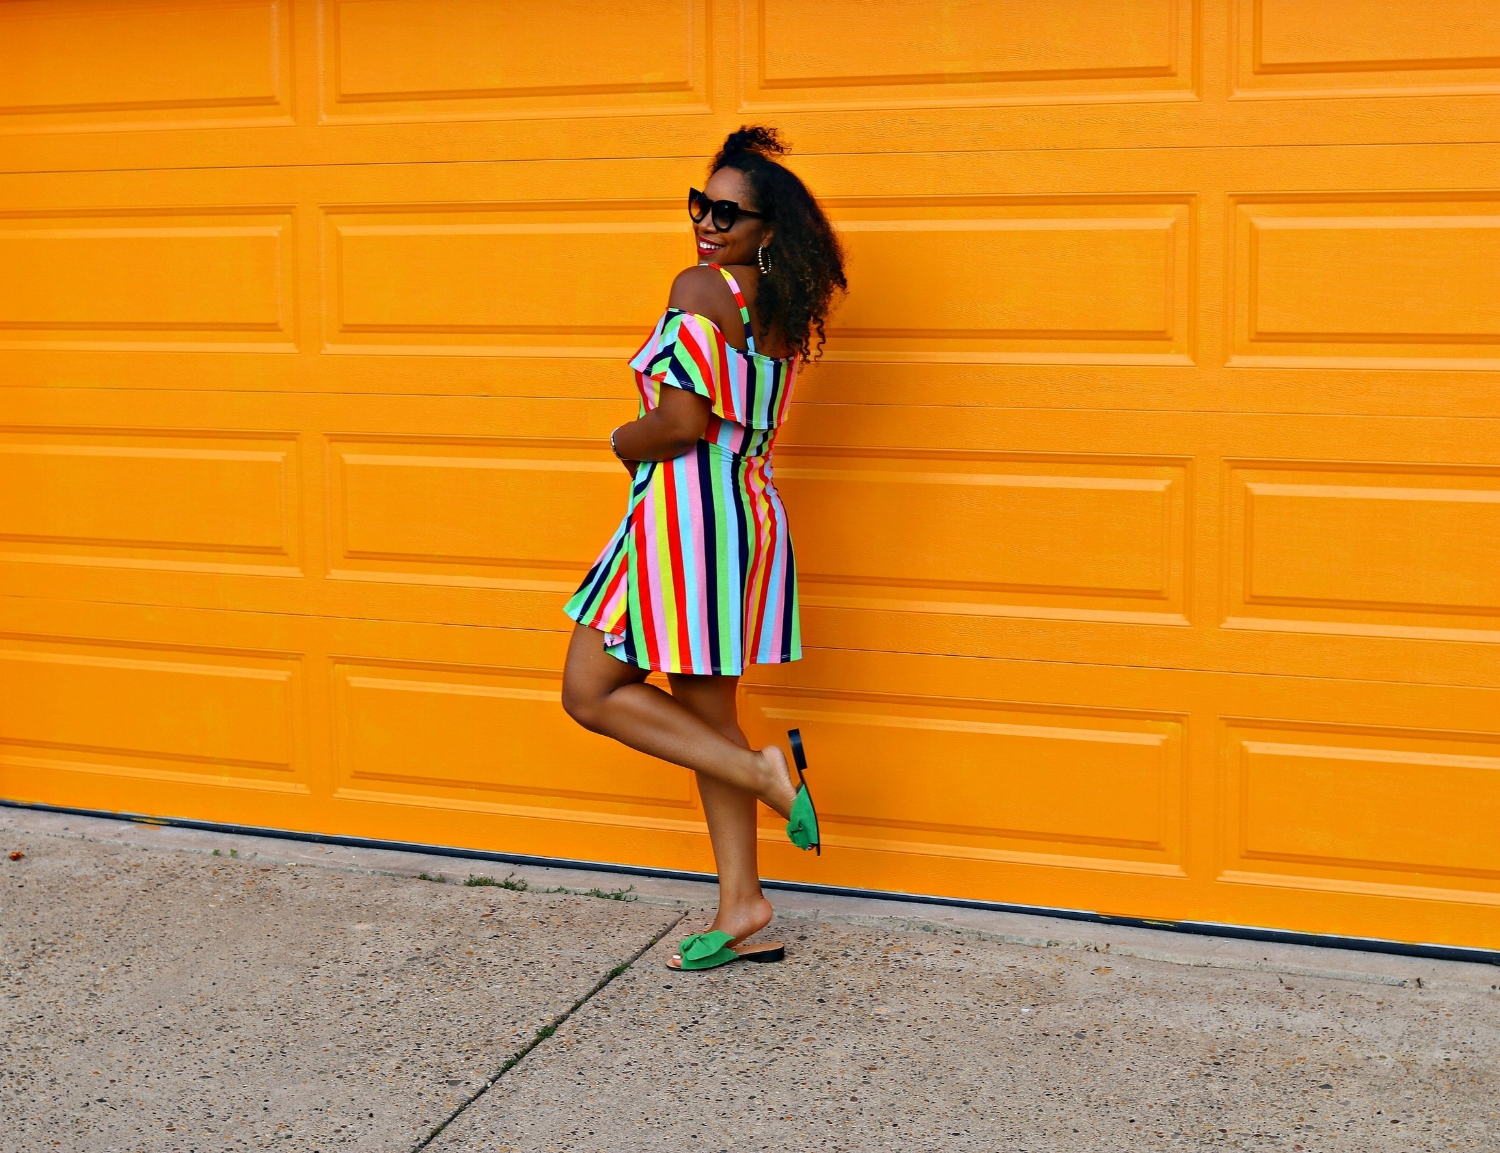 Summer Dress, Asos Dress, Zara slides, Vibrant Style